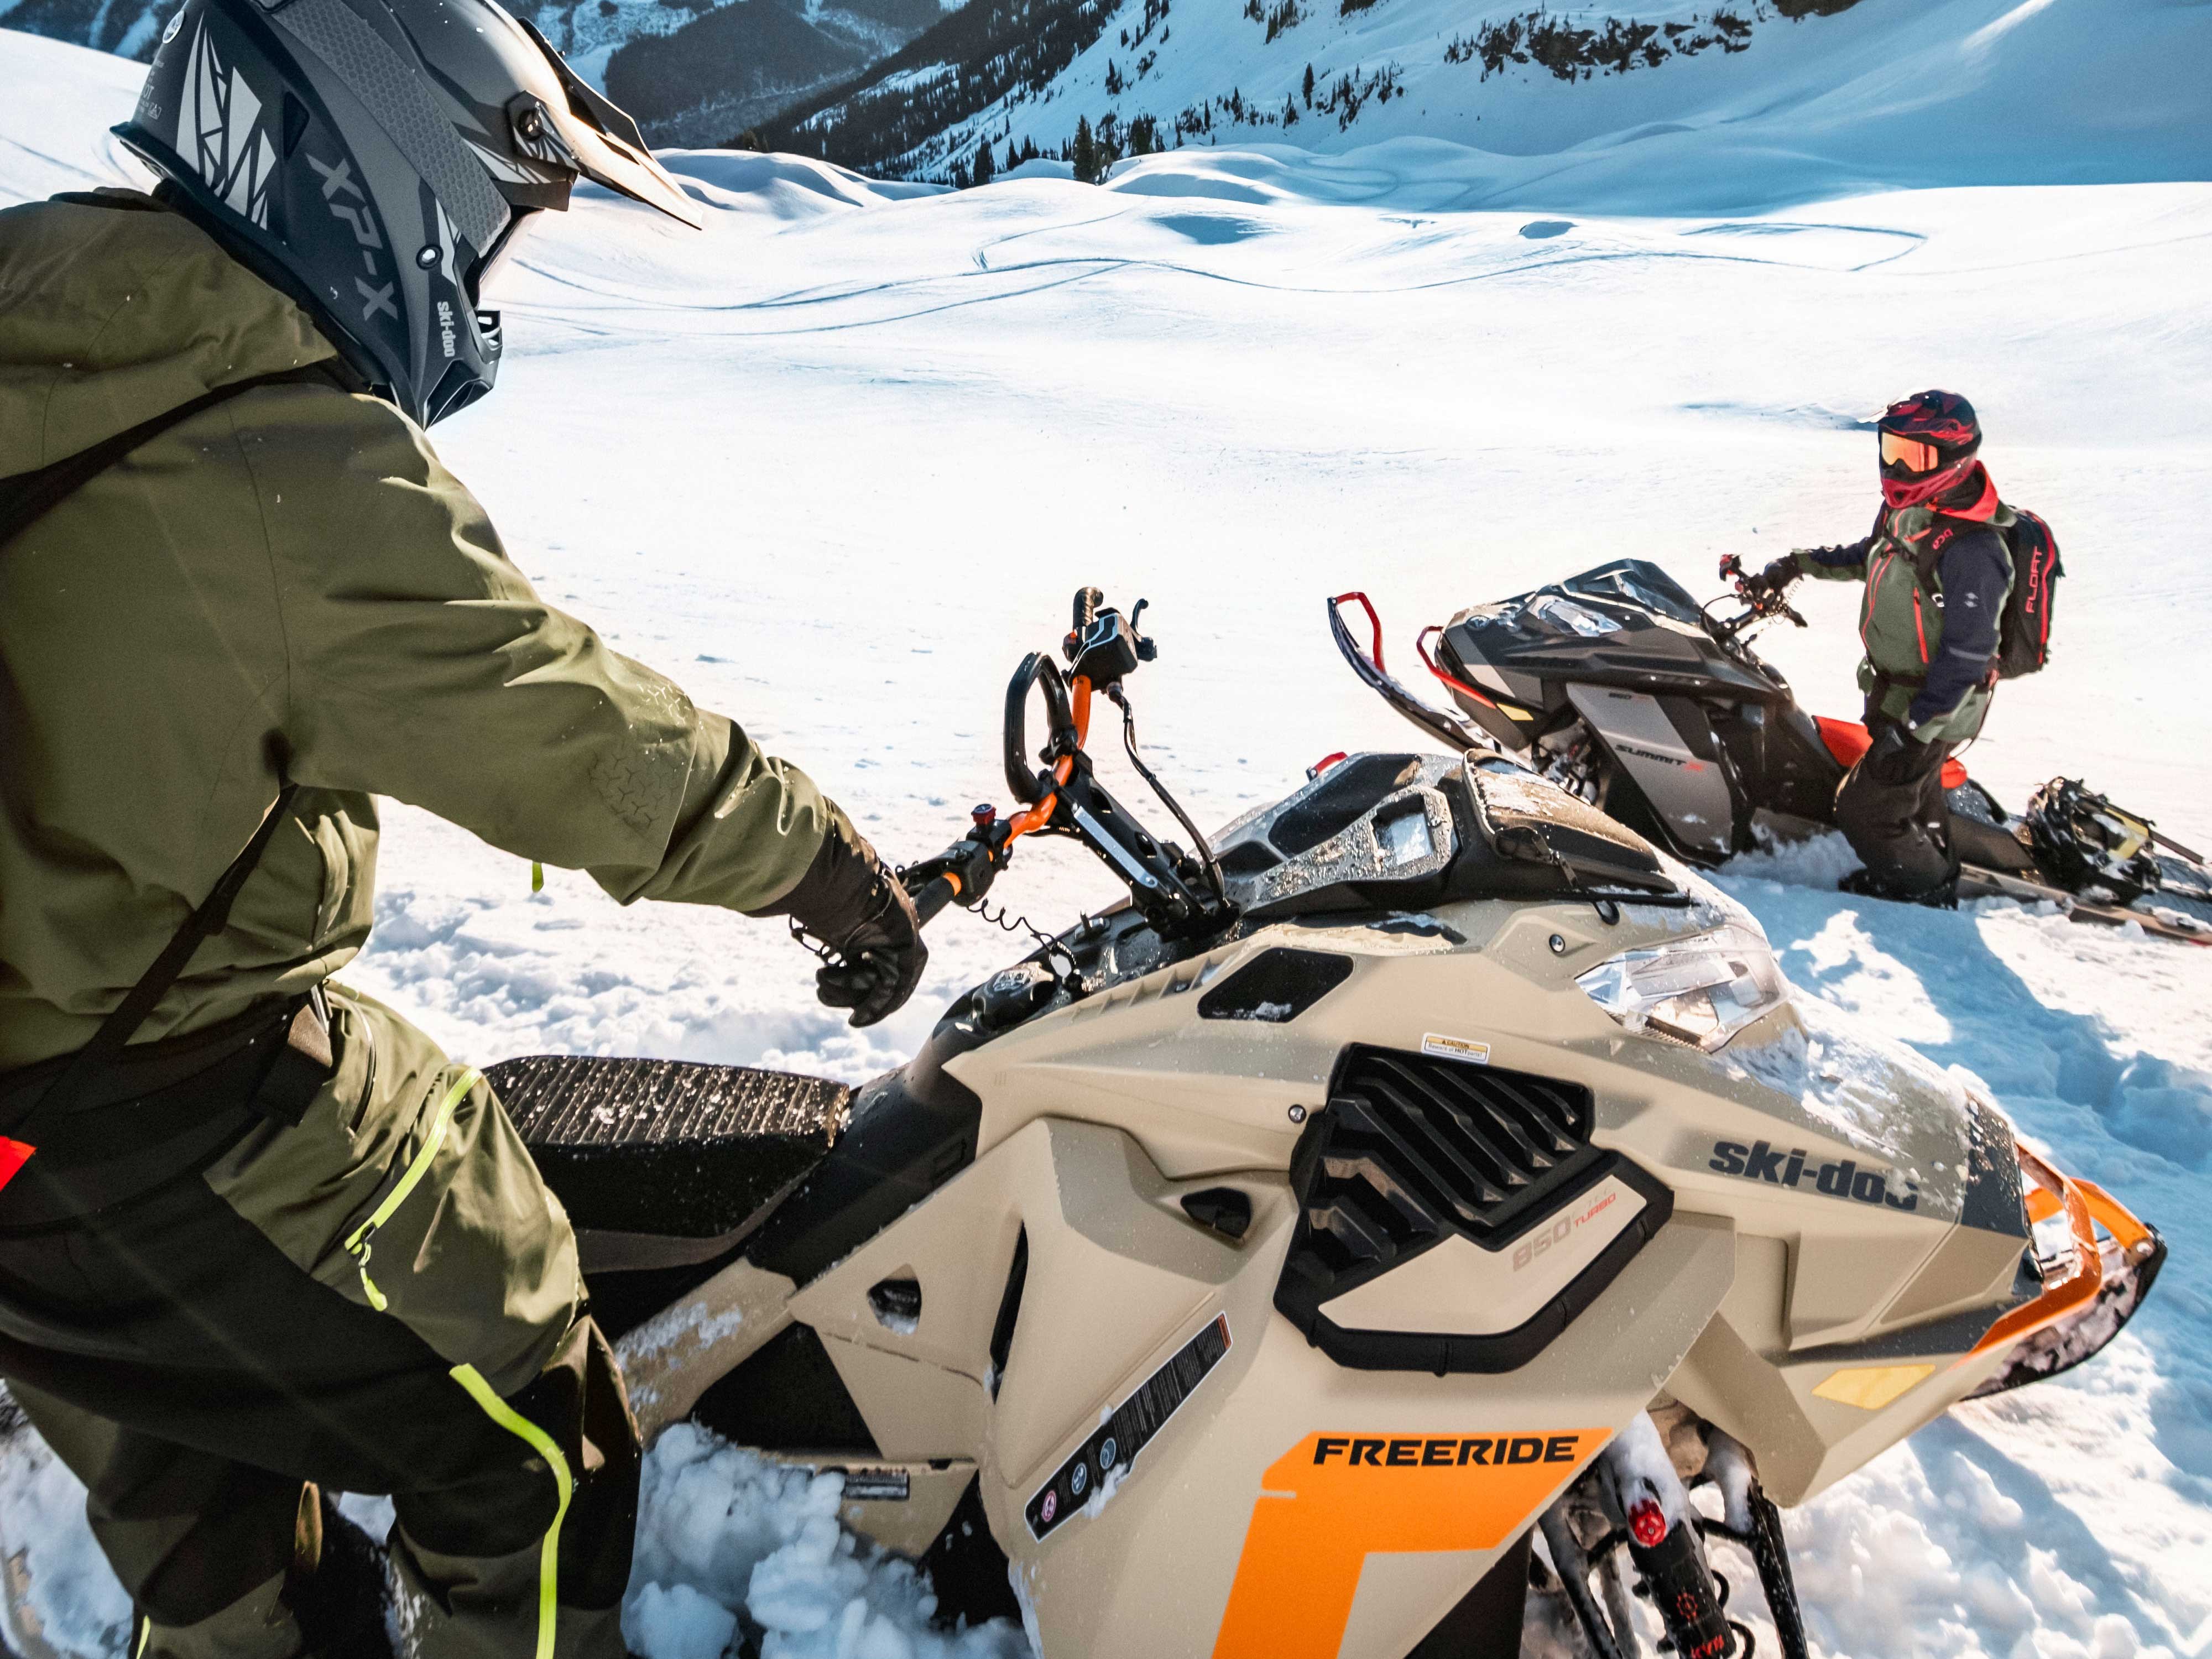 2 riders talking on their Ski-Doo Freeride